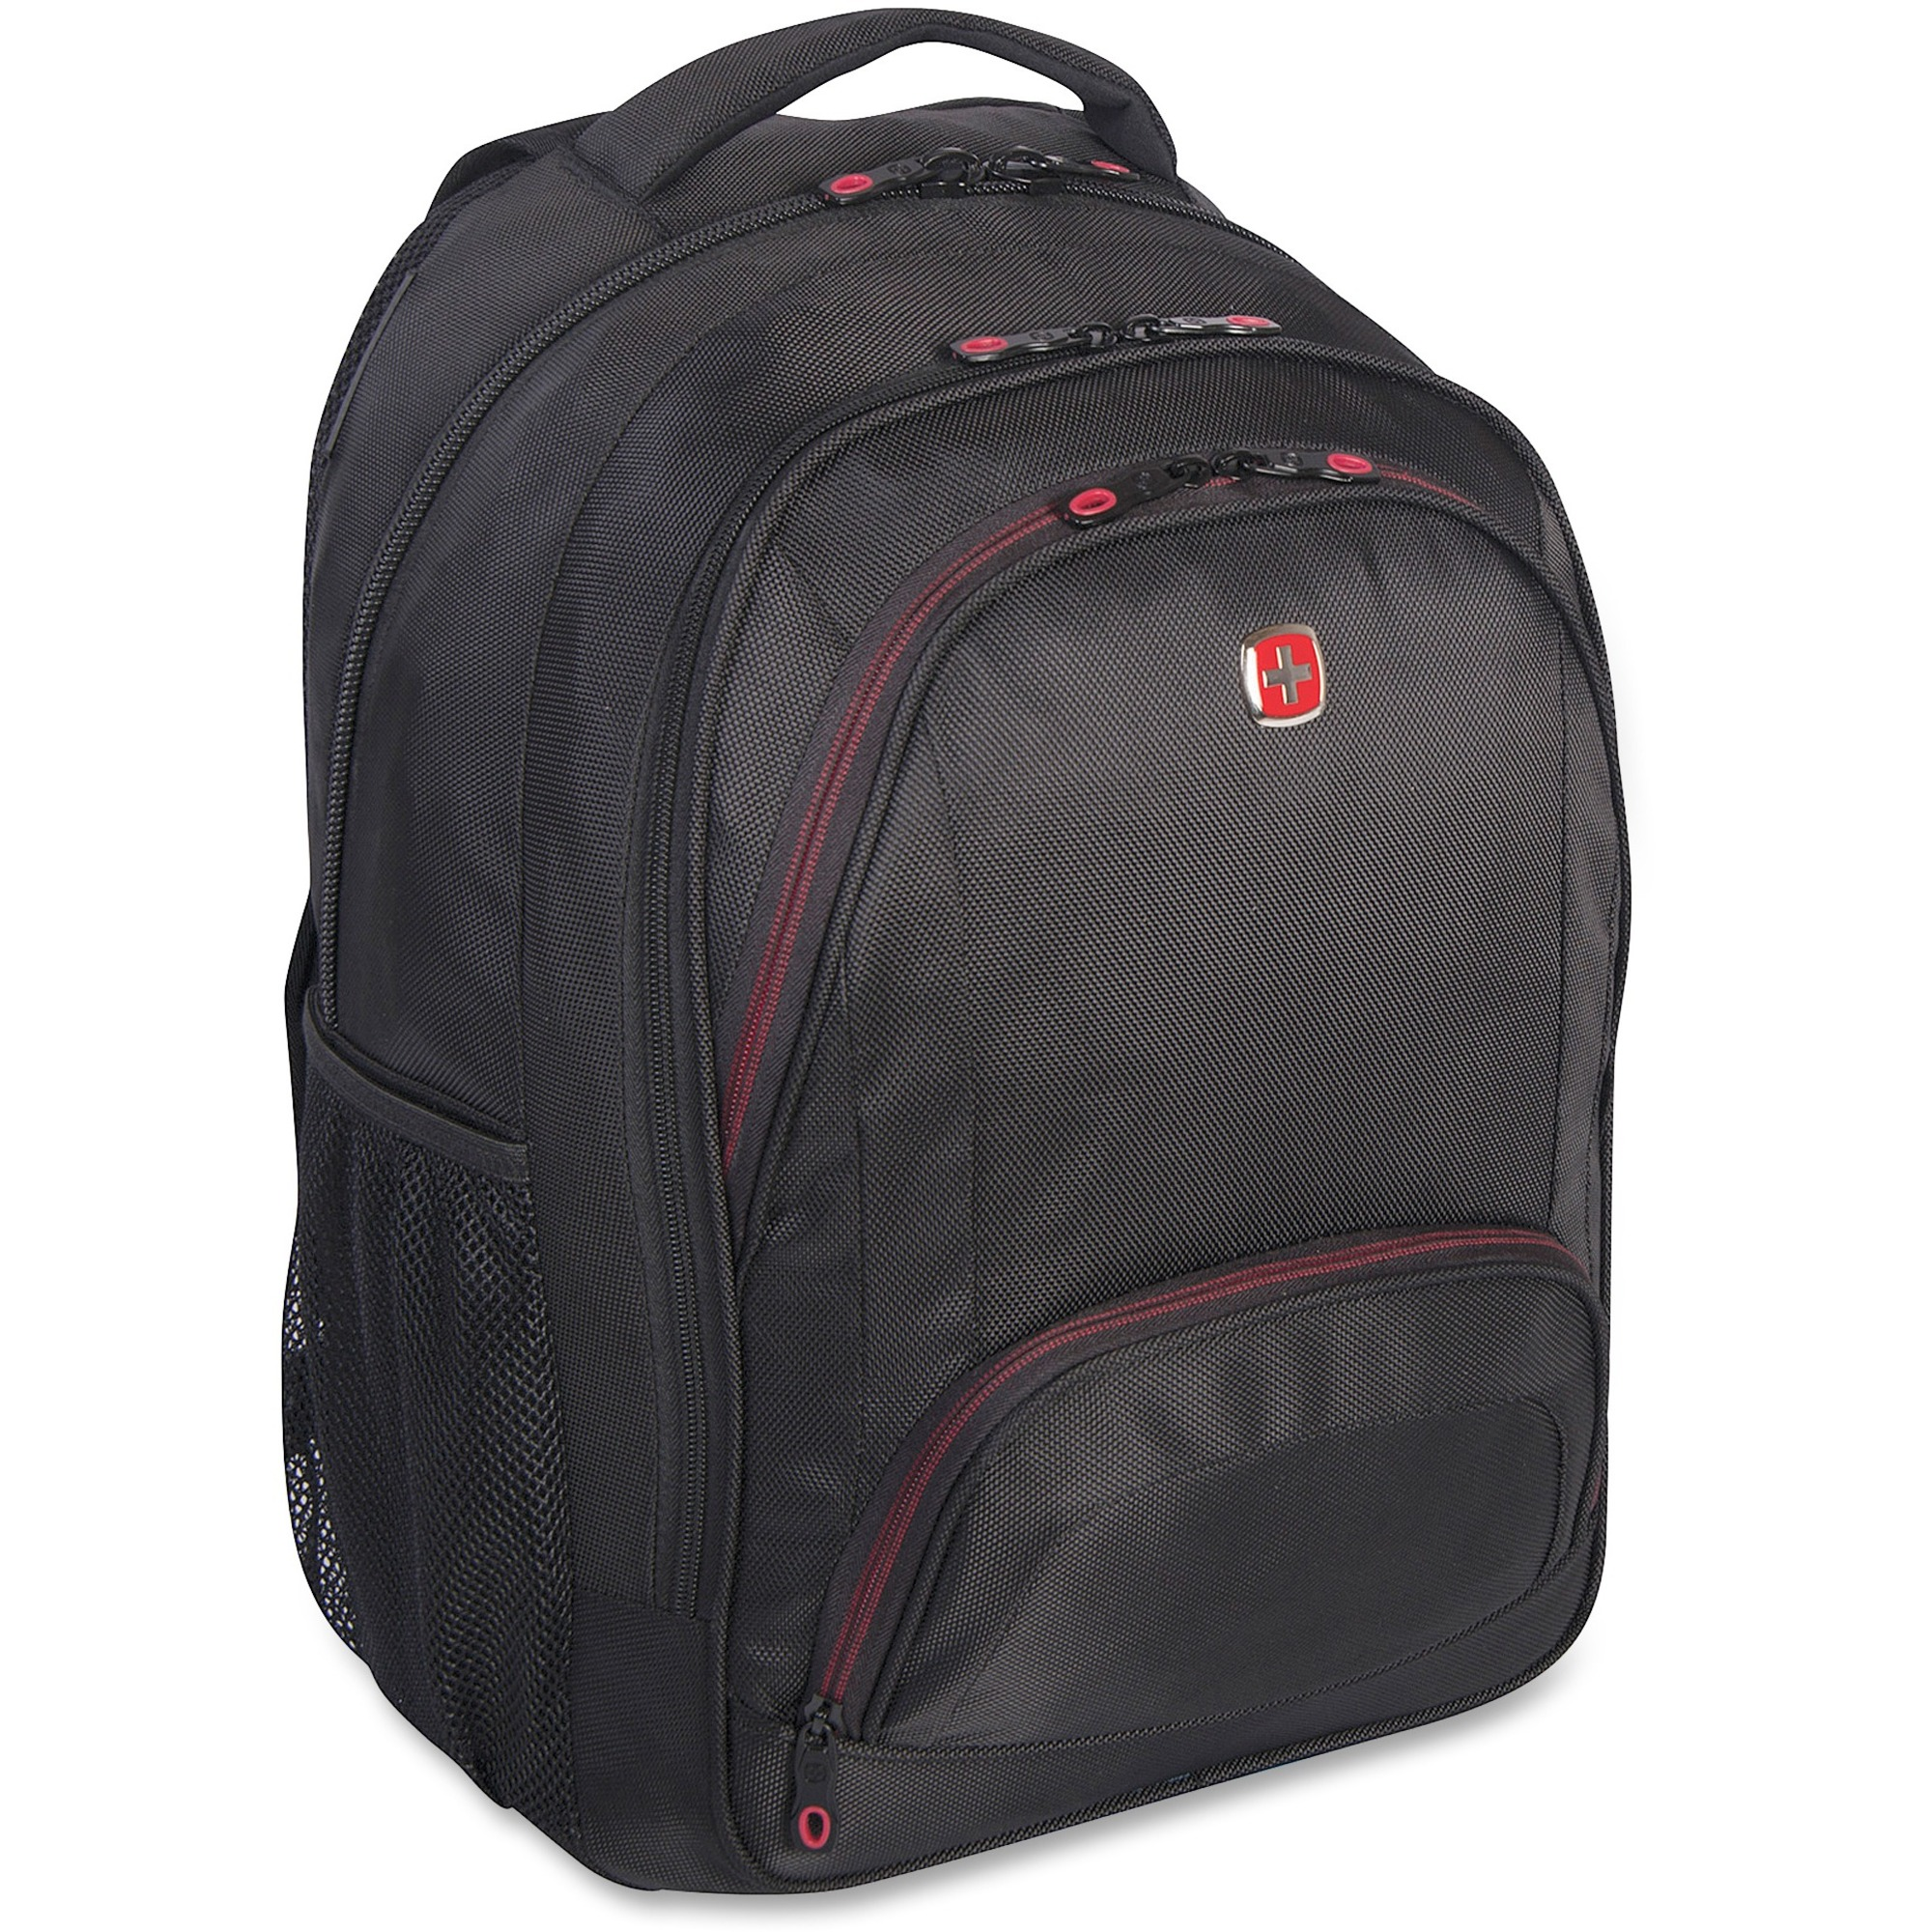 2bbd7ba5b1 Swissgear Carrying Case (Backpack) for 15.6